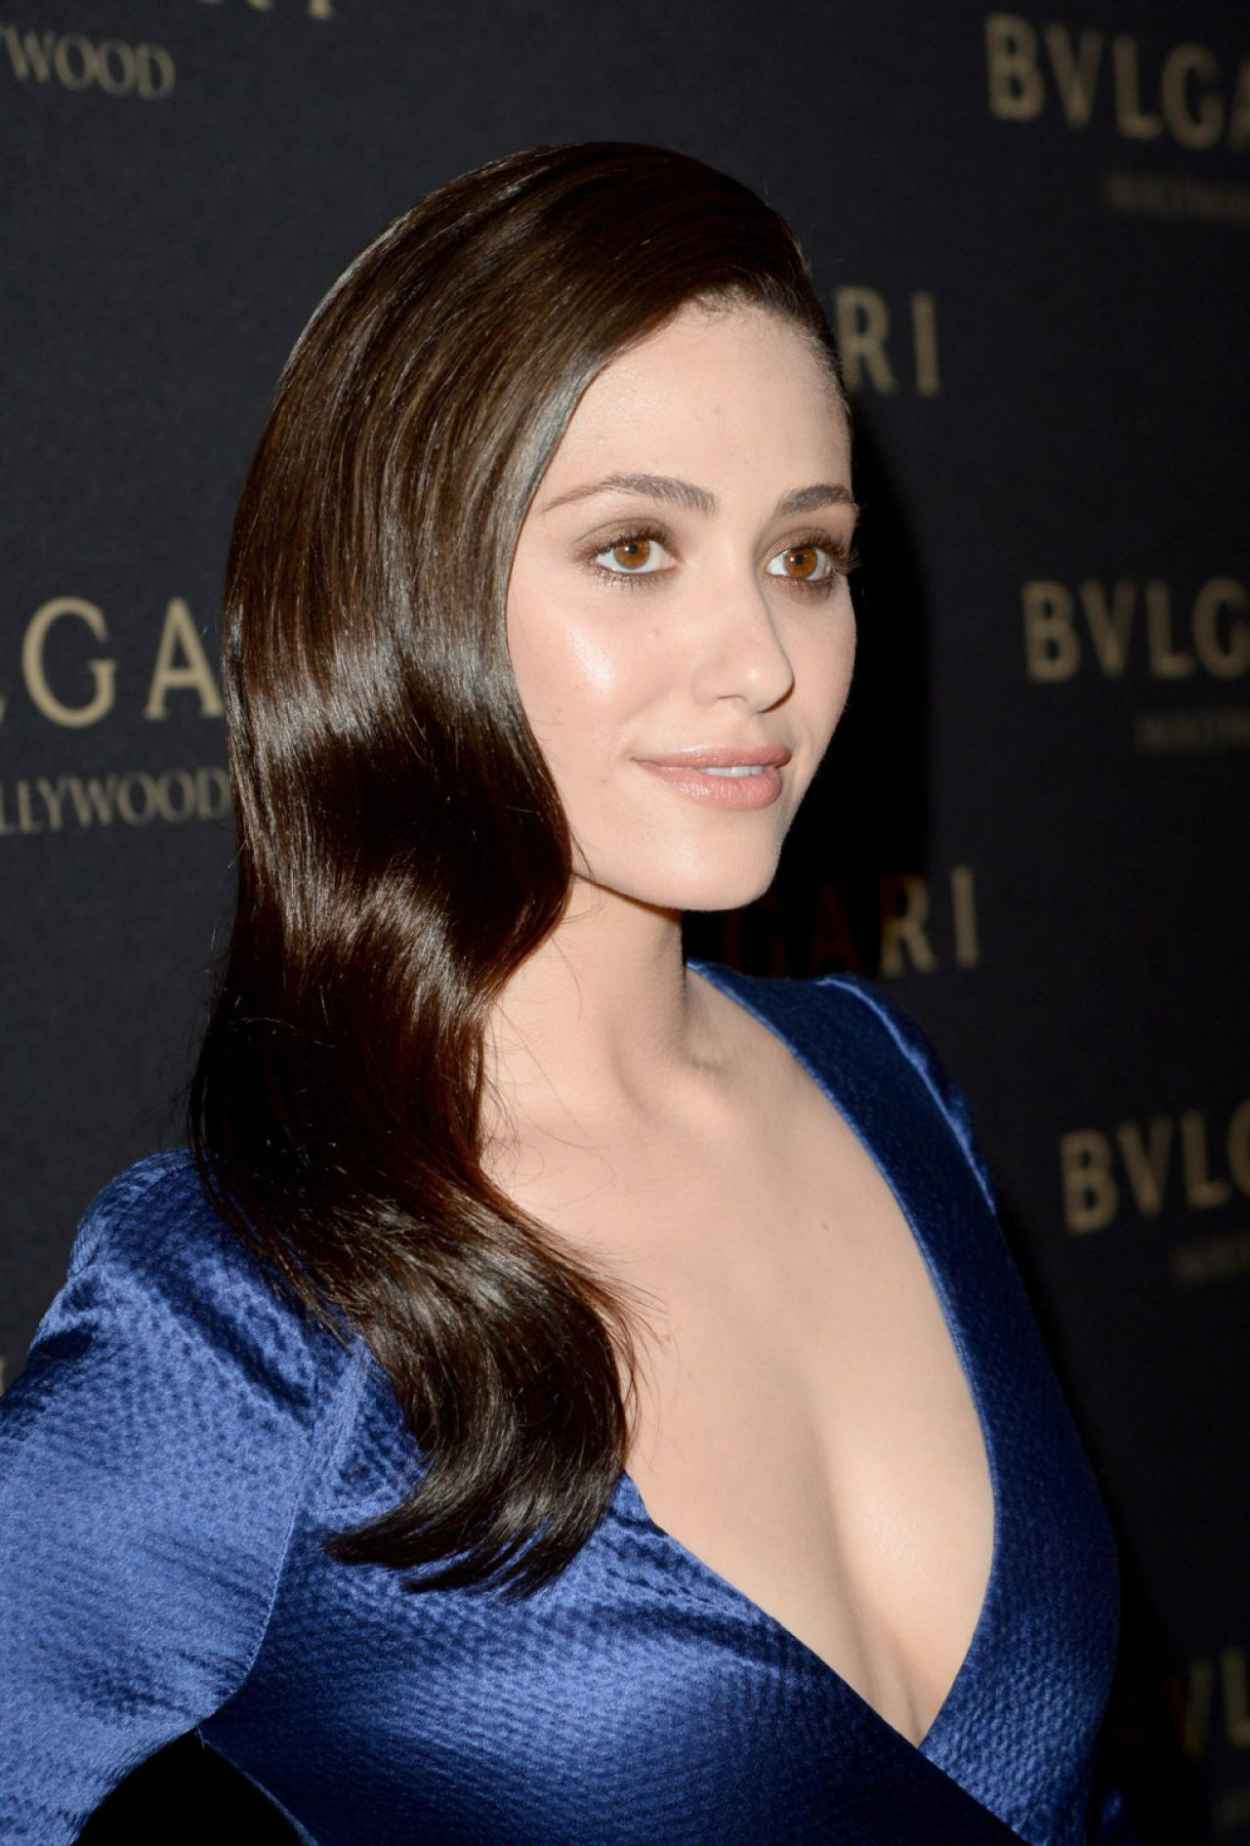 Emmy Rossum Wearing J.Mendel Dress - BVLGARI Presents -Decades Of Glamour-, February 2015-1